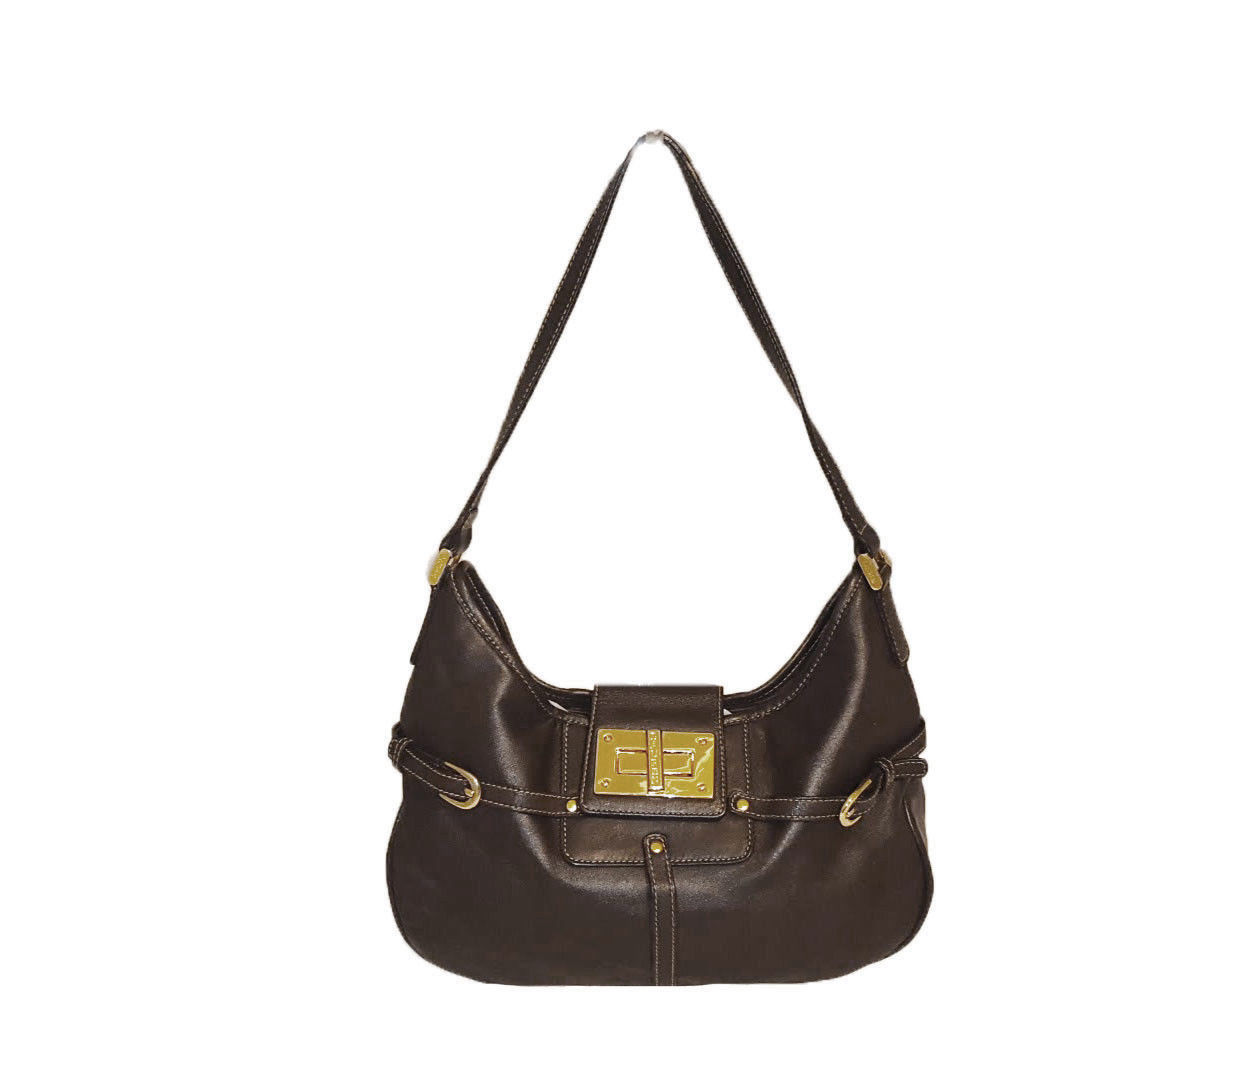 3d3b3ef718 Ralph Lauren RLL Leather Logo Embossed Turnlock Hobo Shoulder Bag - EUC  FREESHIP -  34.99